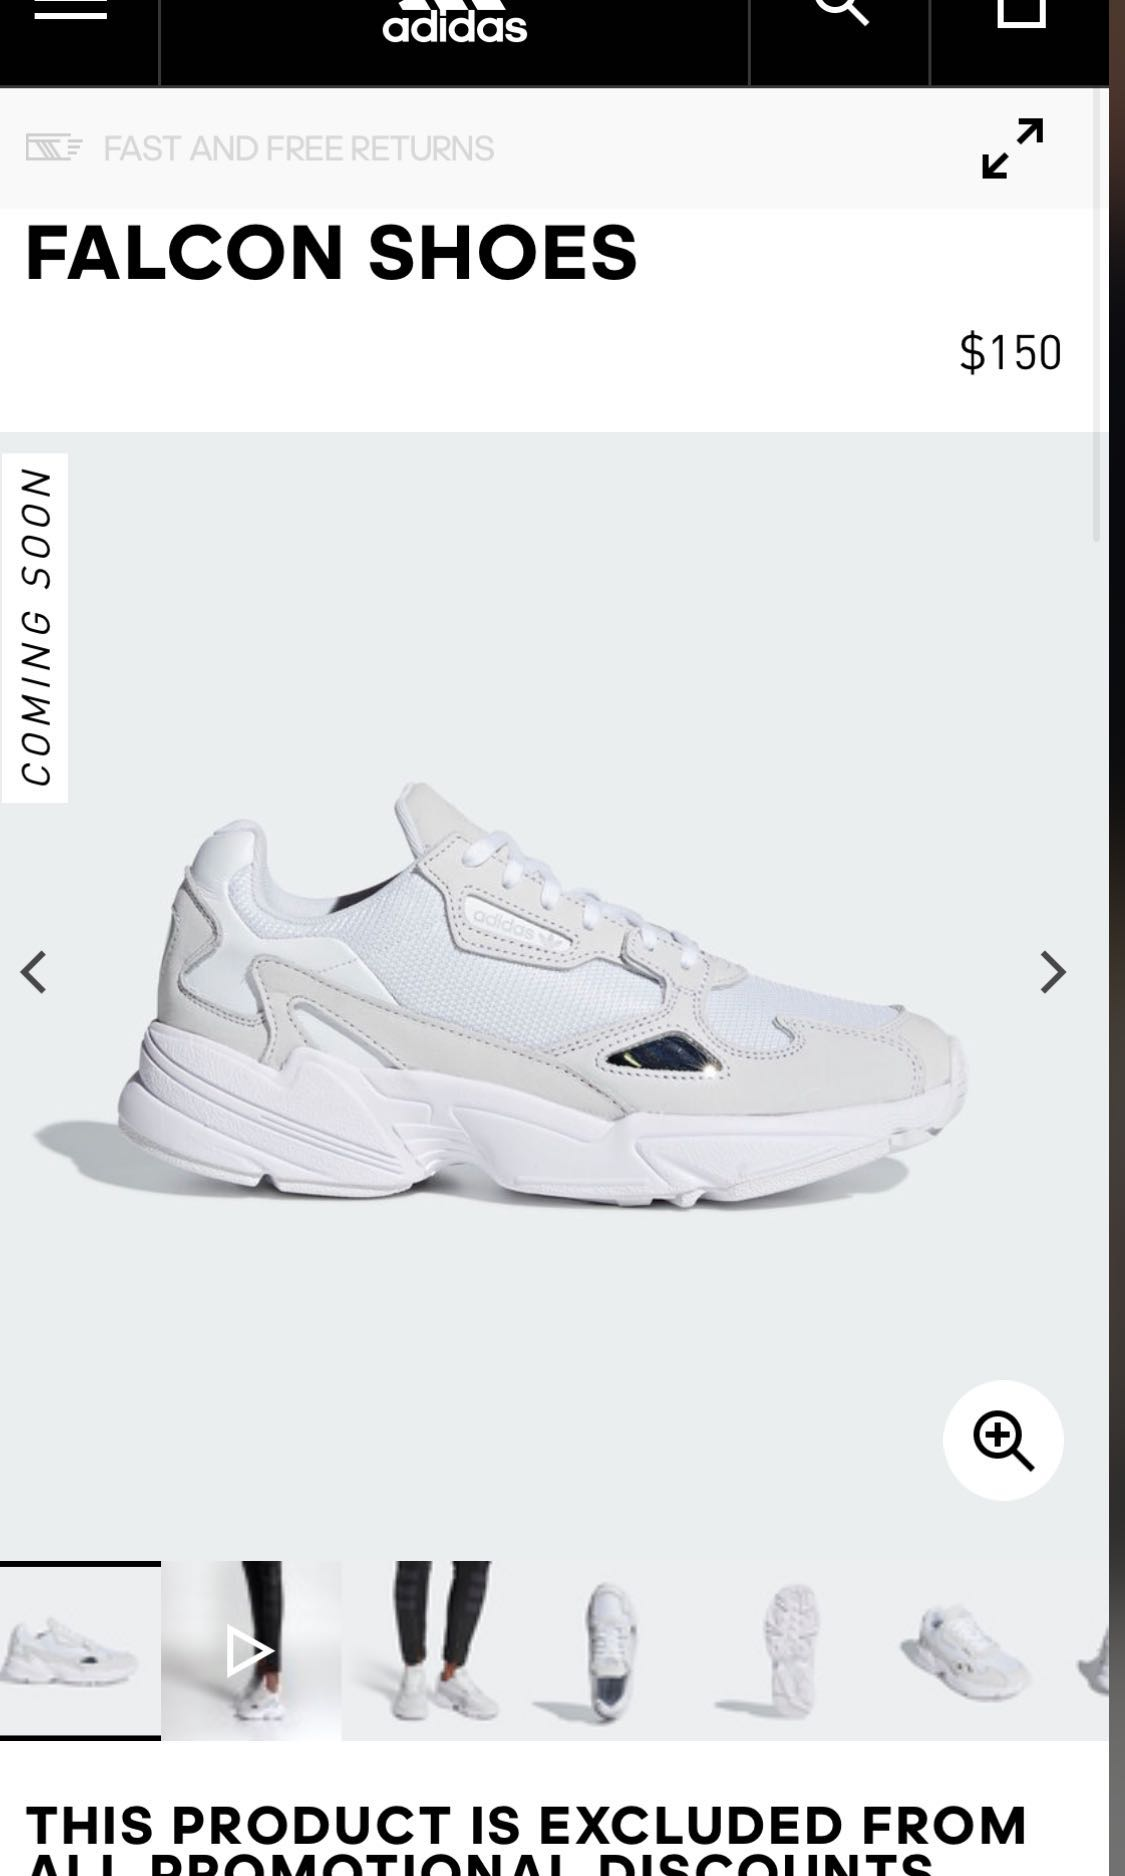 ffe7c5aeafd7 BNWT Adidas Falcon Sneakers White, Women's Fashion, Shoes, Sneakers ...